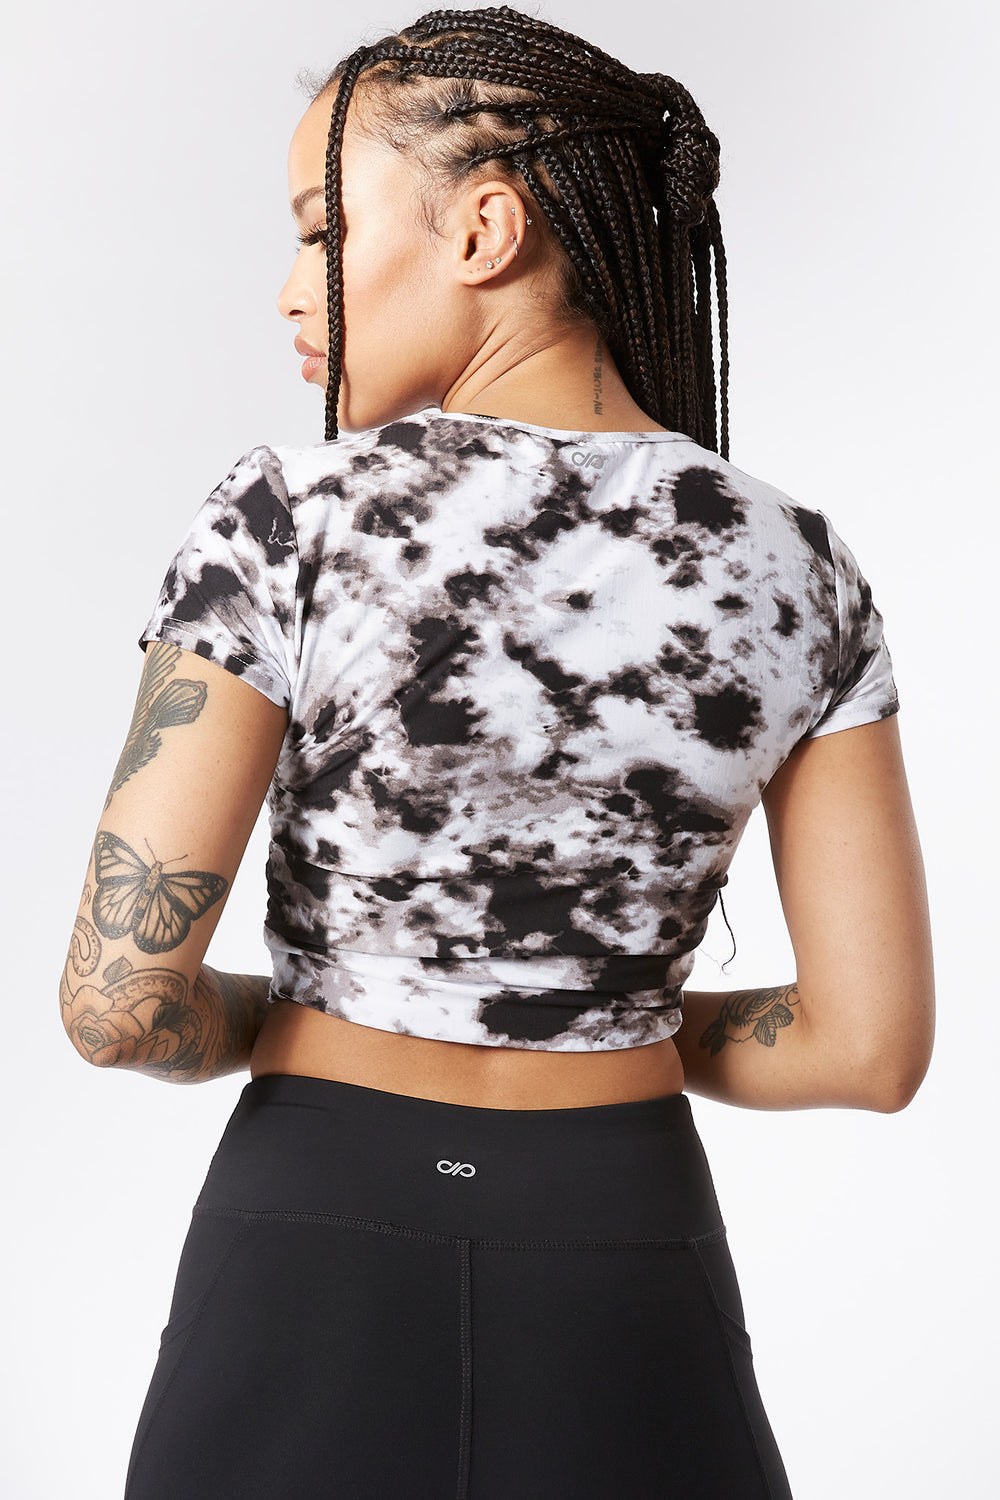 Soft Tie-Dye Cinched Side Active Cropped Top Black with White